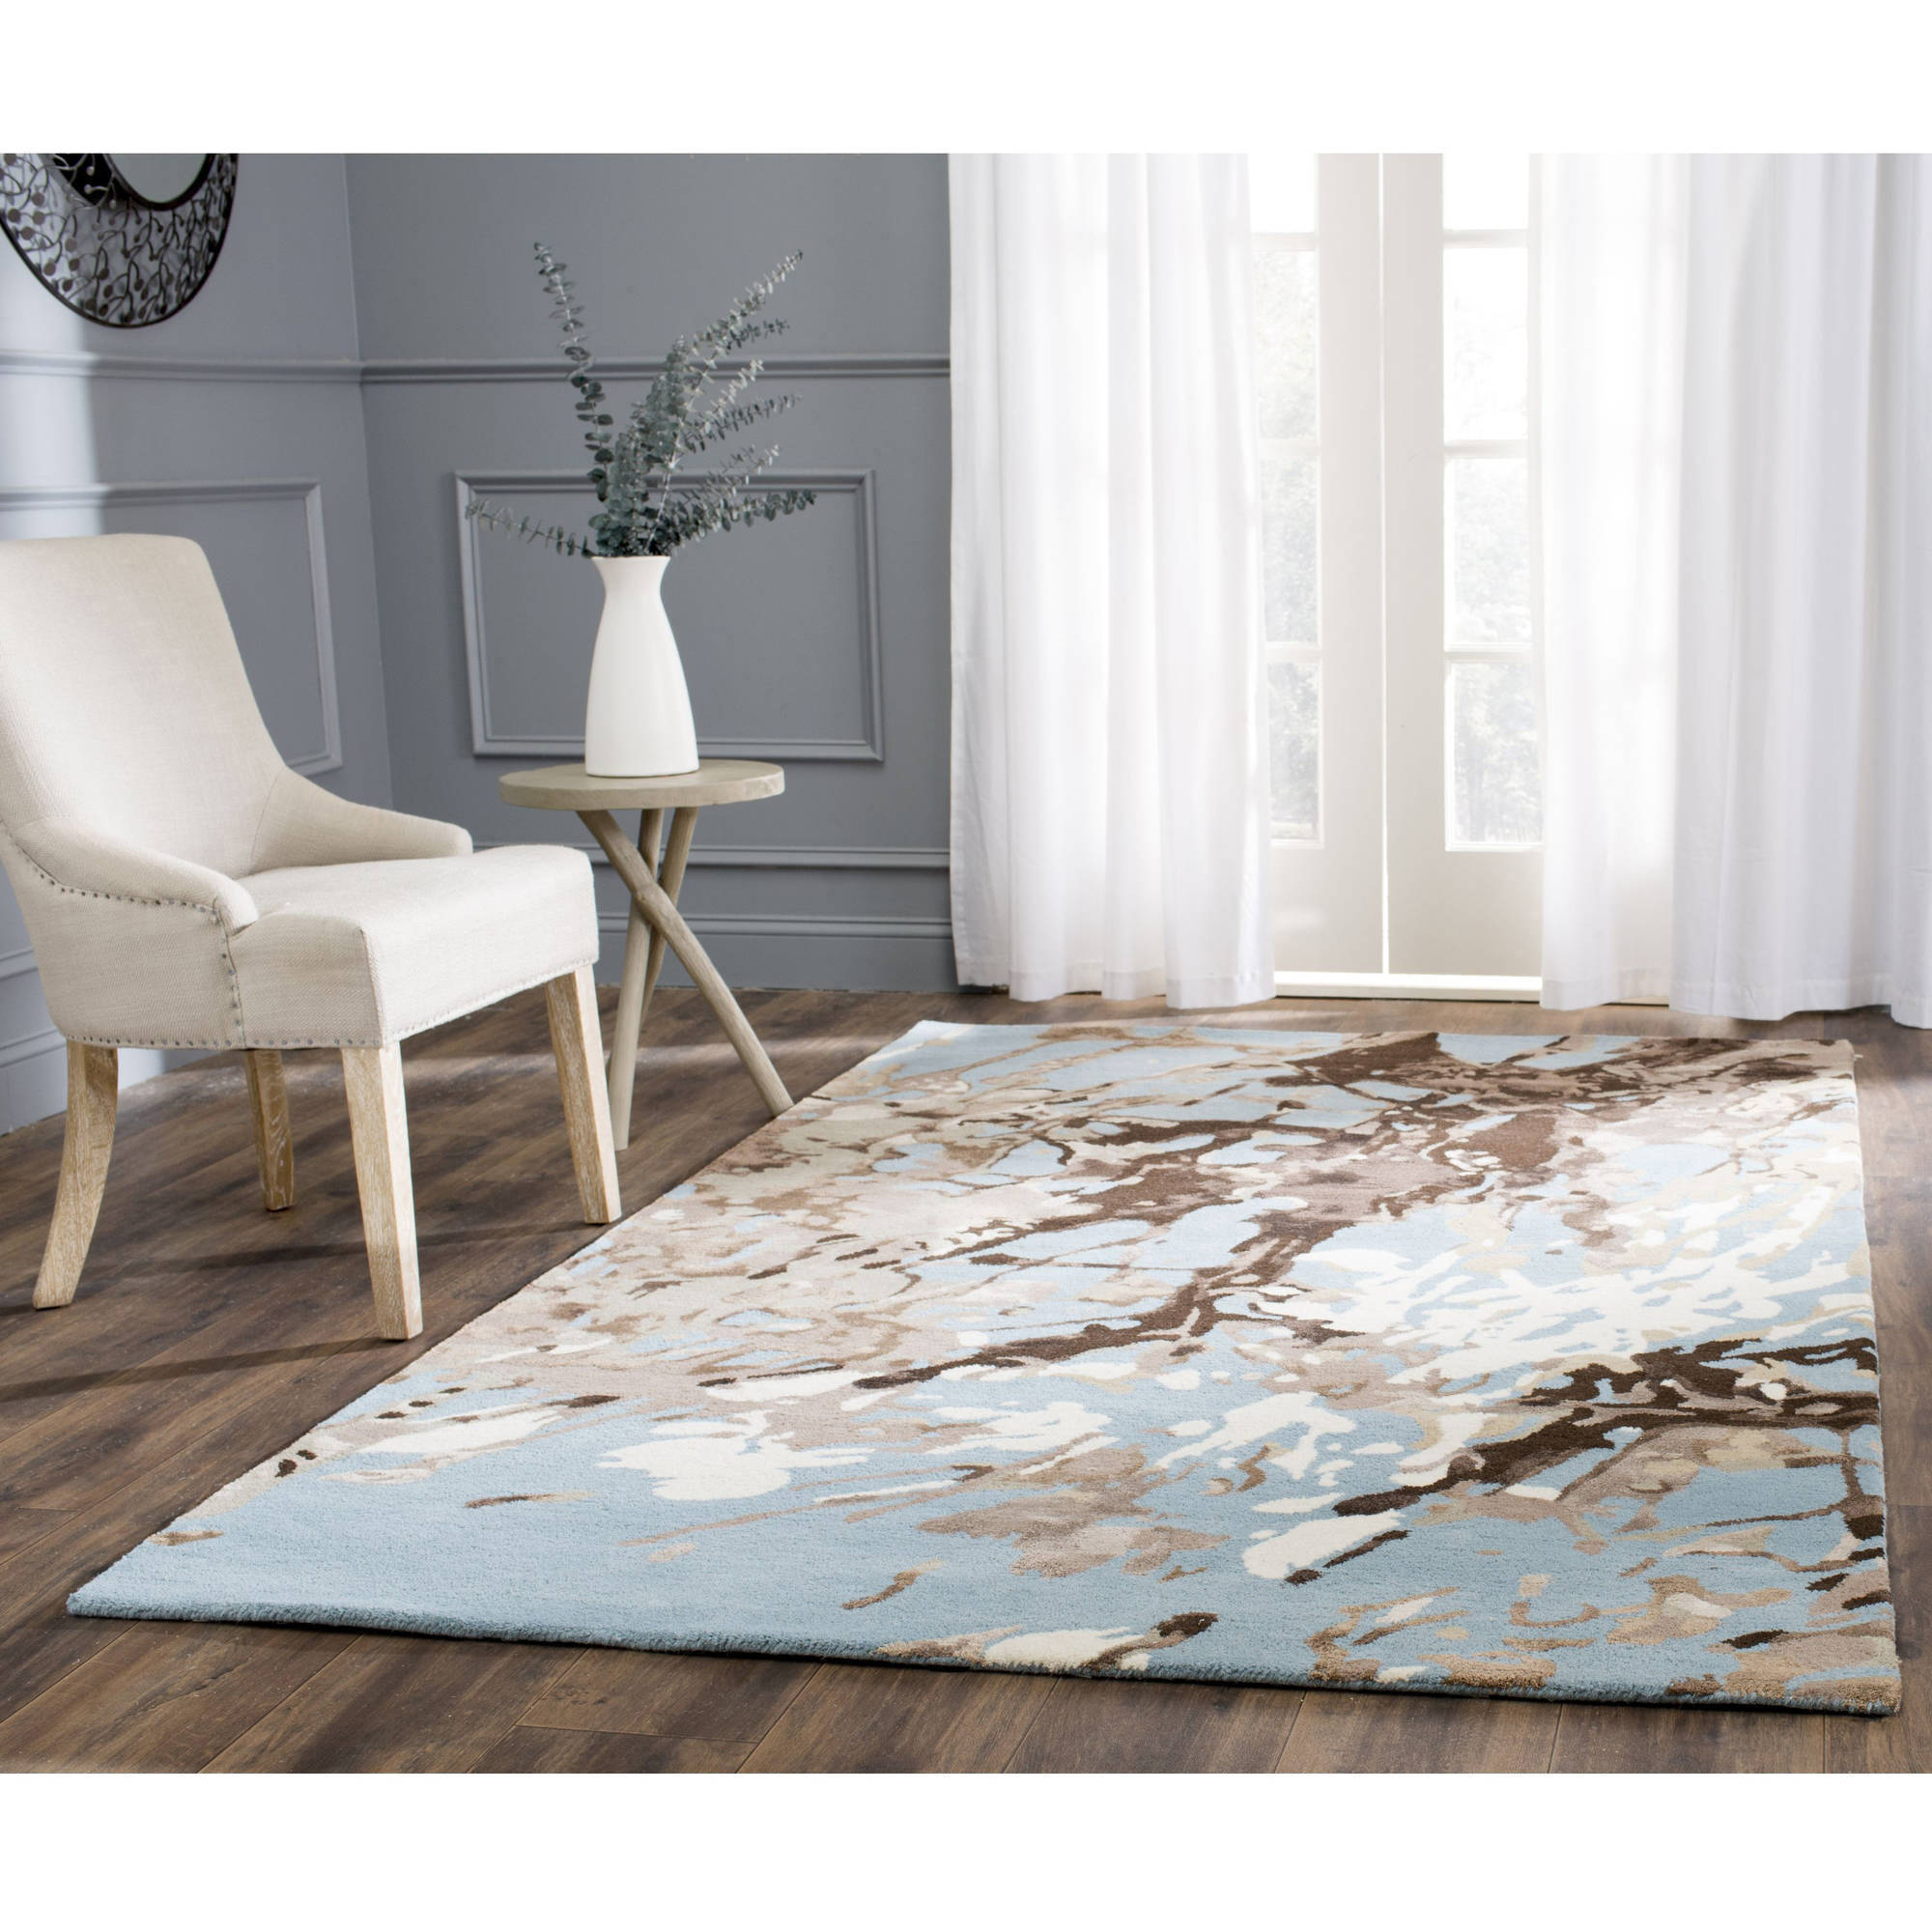 Safavieh Soho Ace Abstract Wool Area Rug